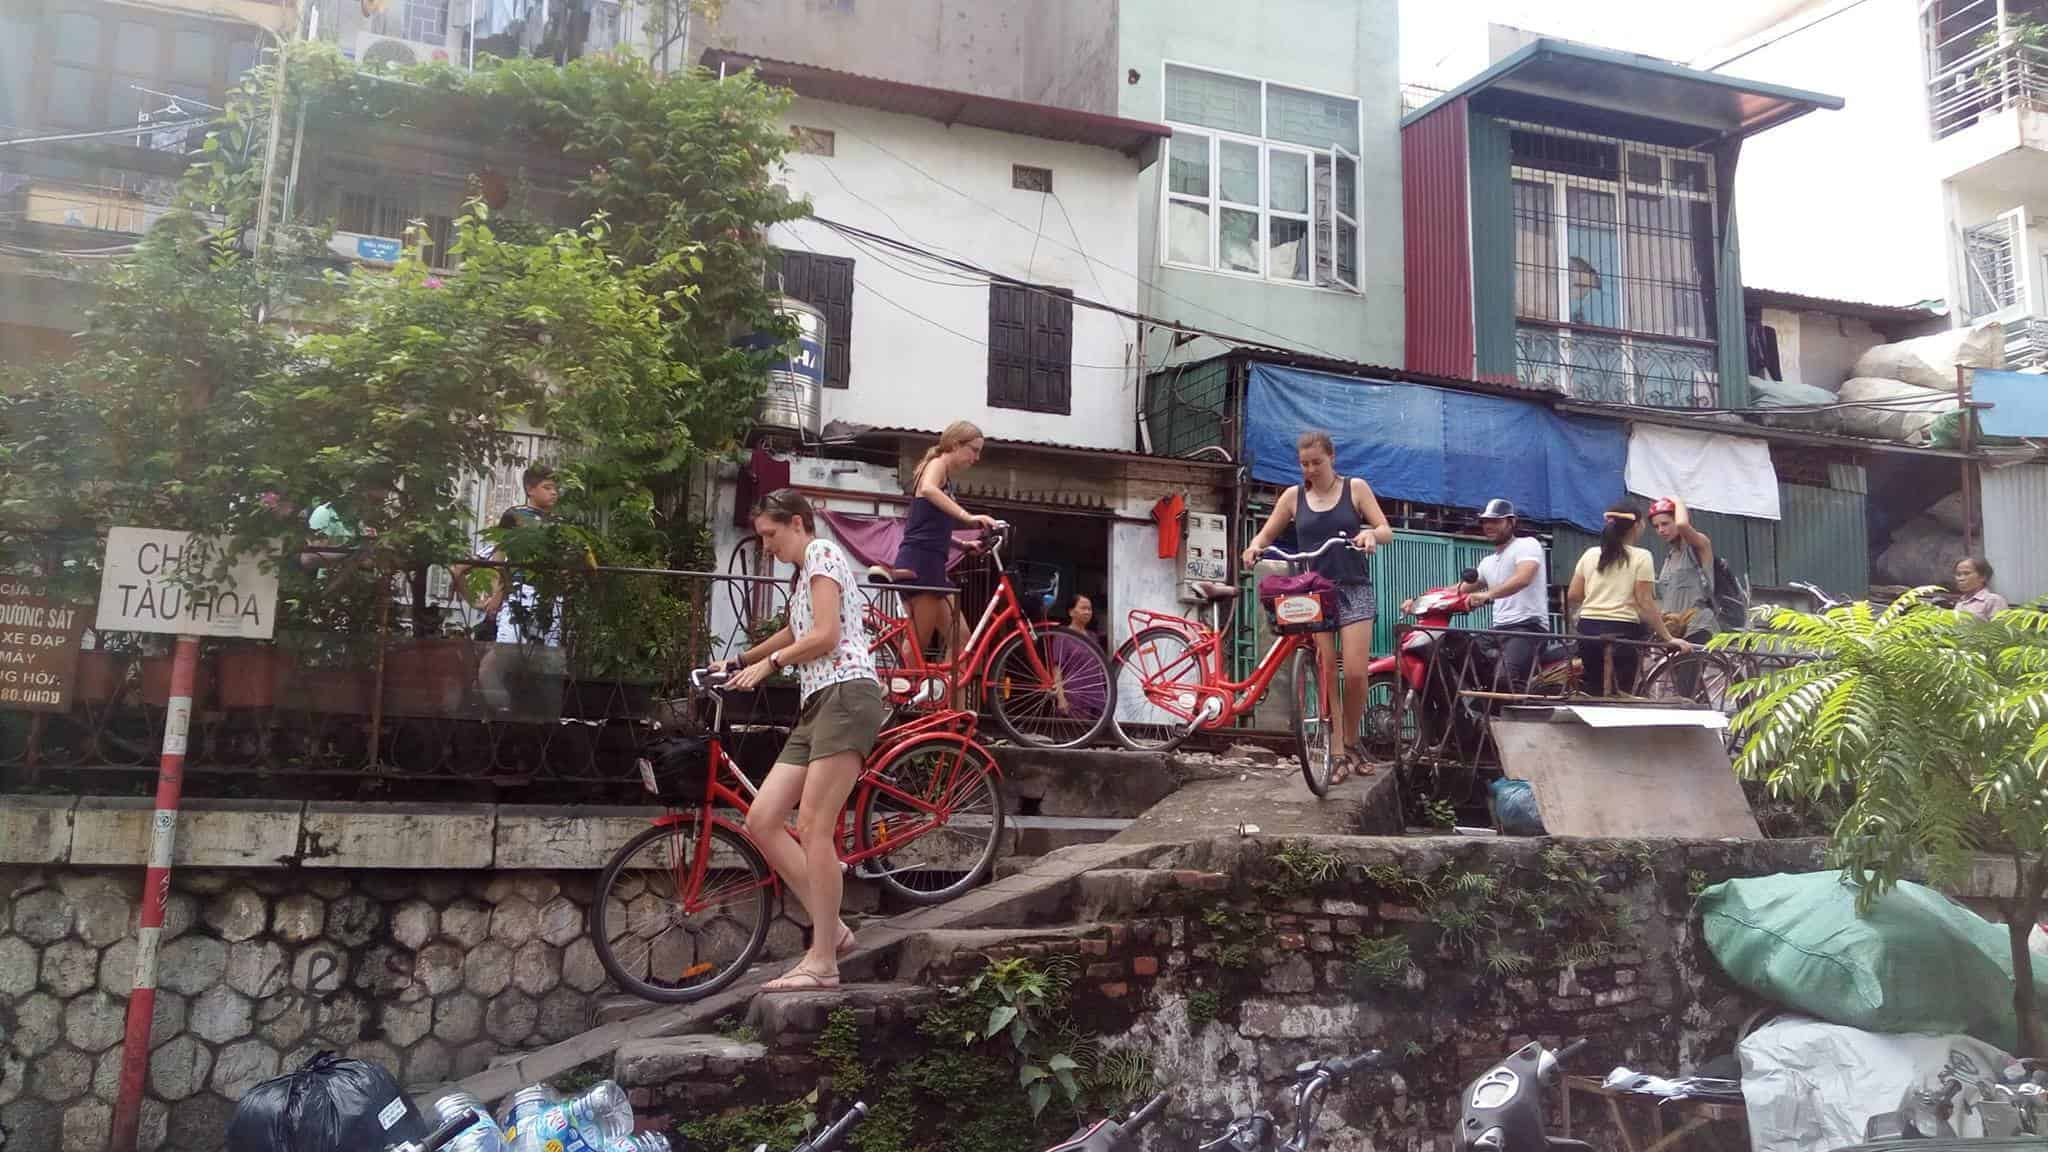 A Group Of Travellers Push Their Bikes Down a Ramp in Hanoi During Their Cycling Tour.